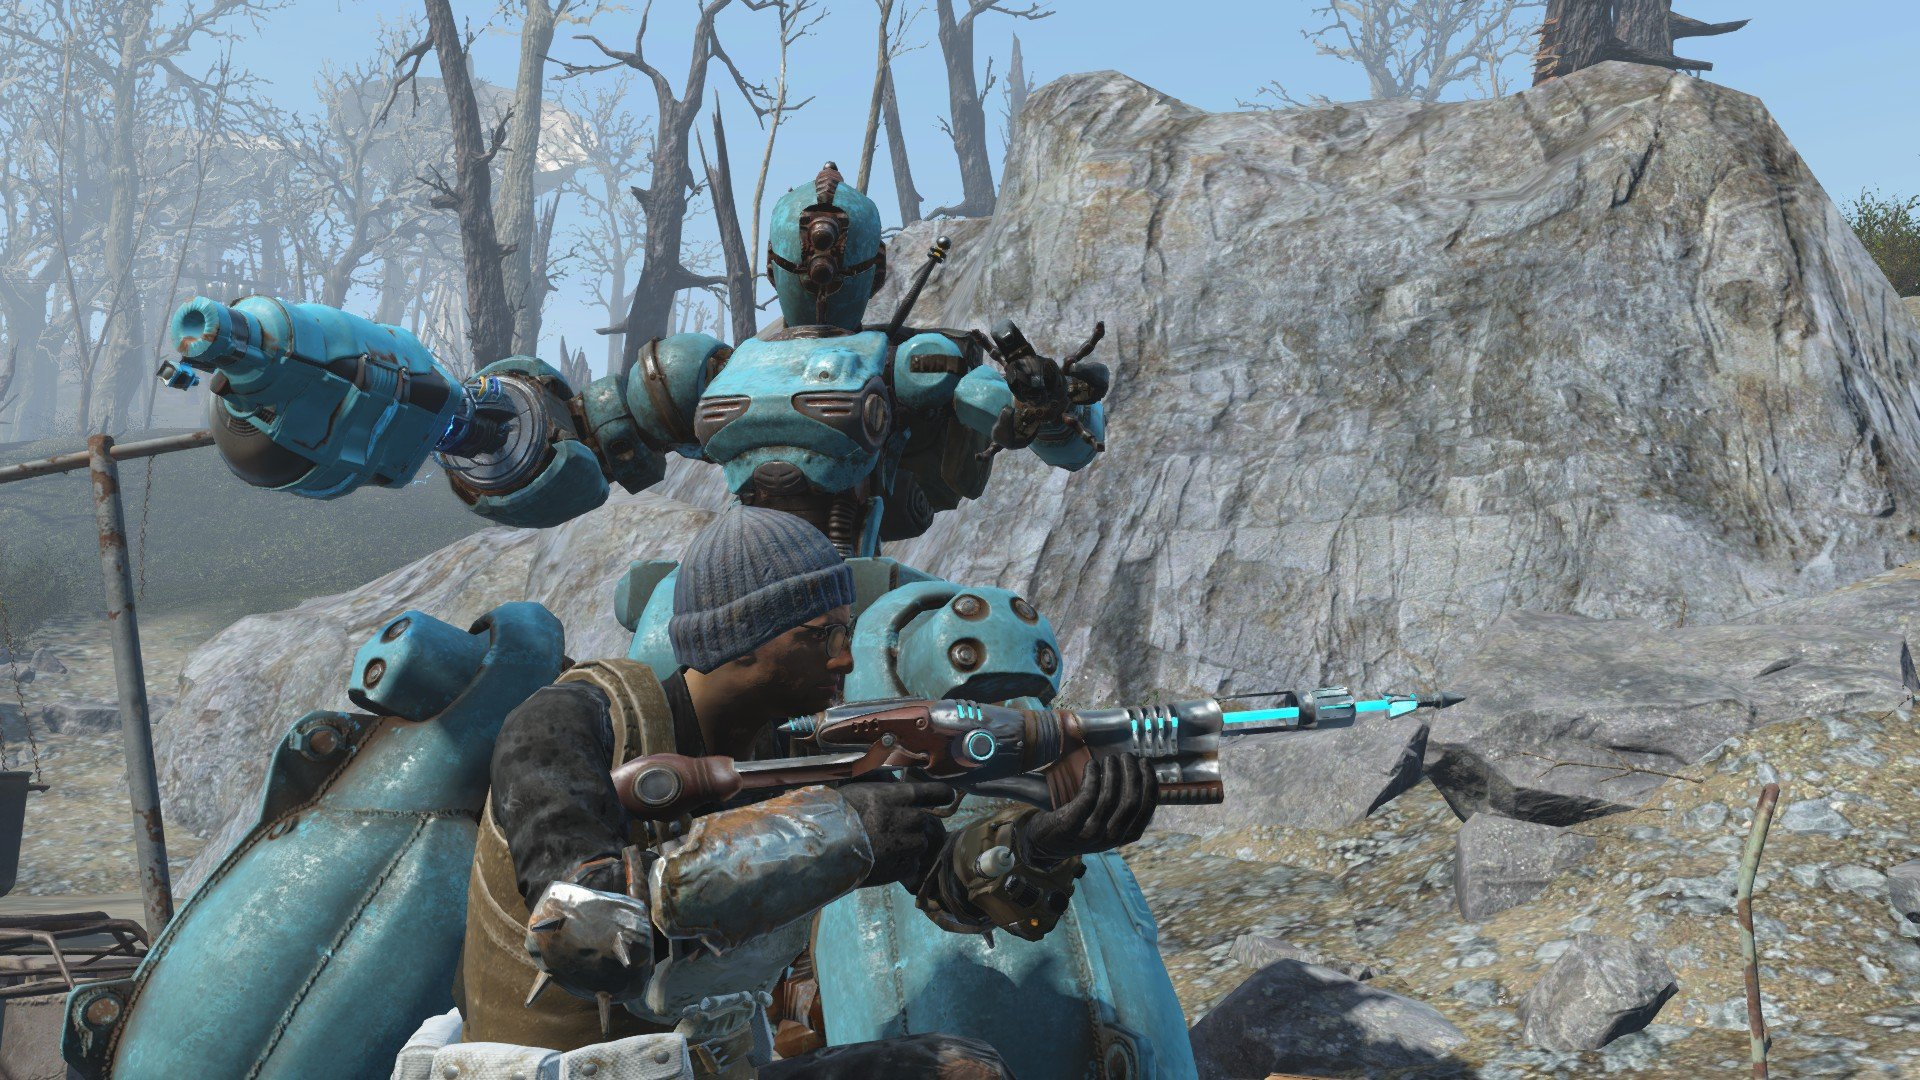 Fully Modded Survivor Fallout 4 Mod Guide And Survival Tips Do not post the same mod/video more than once, with the exception of major updates. fully modded survivor fallout 4 mod